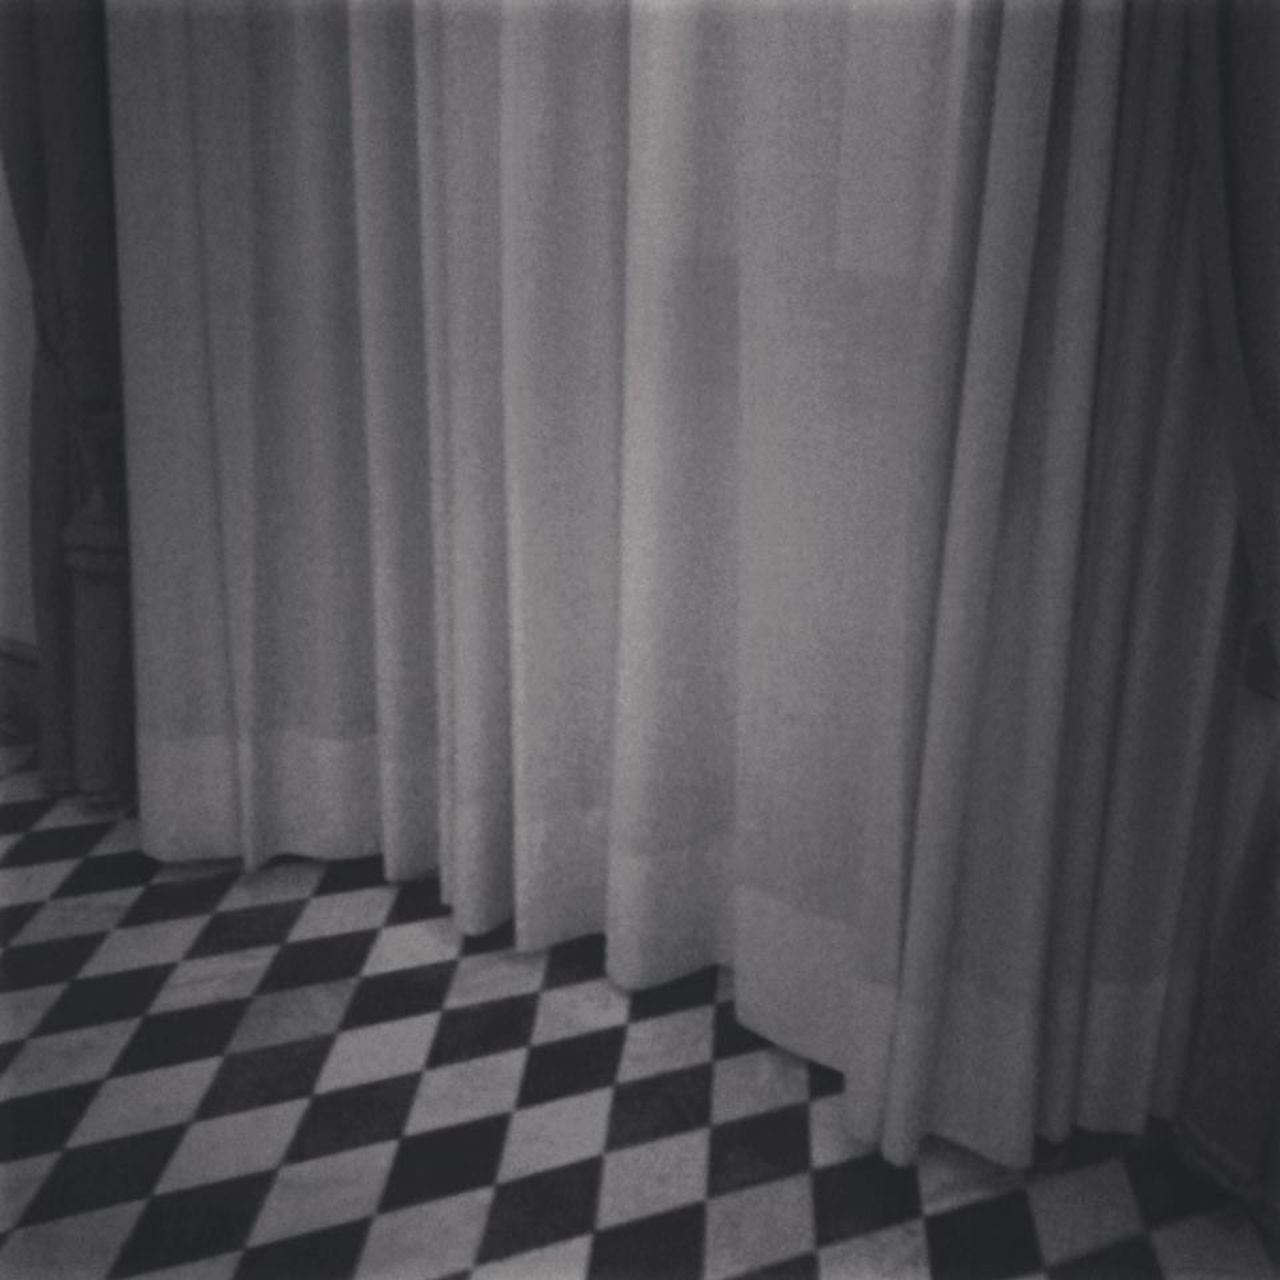 curtain, white, no people, checked pattern, drapes, indoors, day, close-up